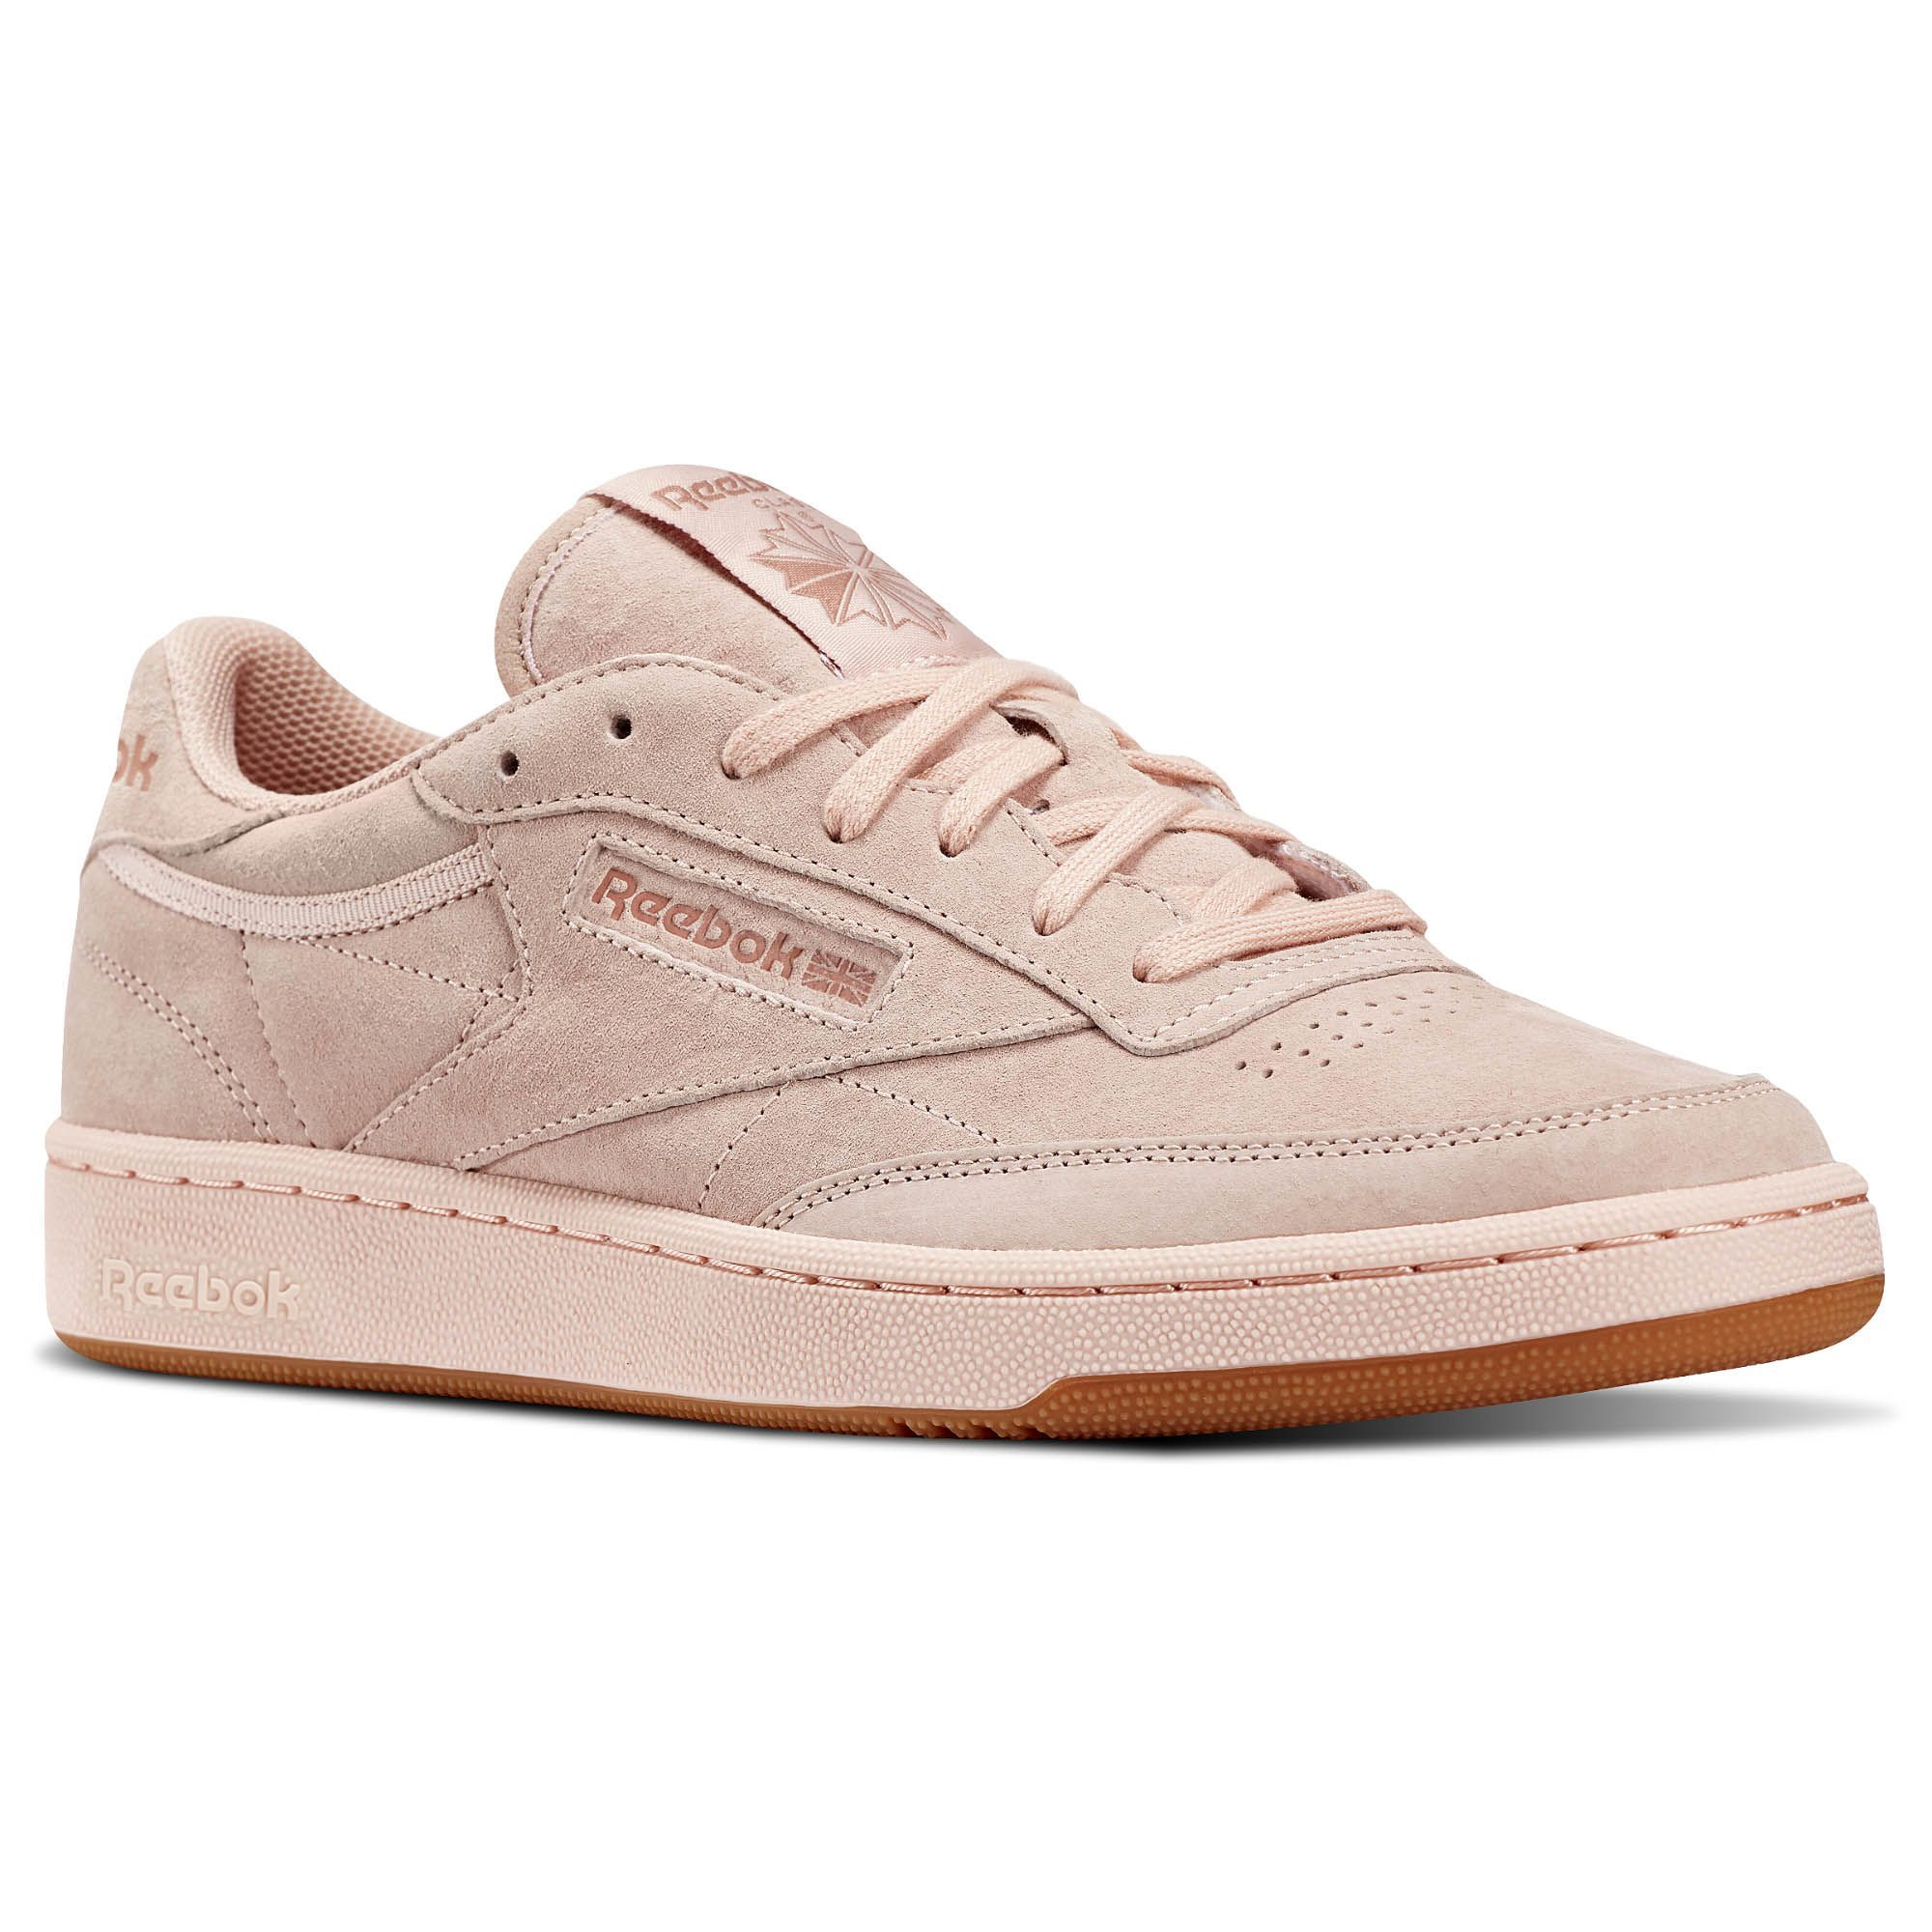 Reebok Club 85 C Tg Bas-tops Et Baskets oh9sgA7i